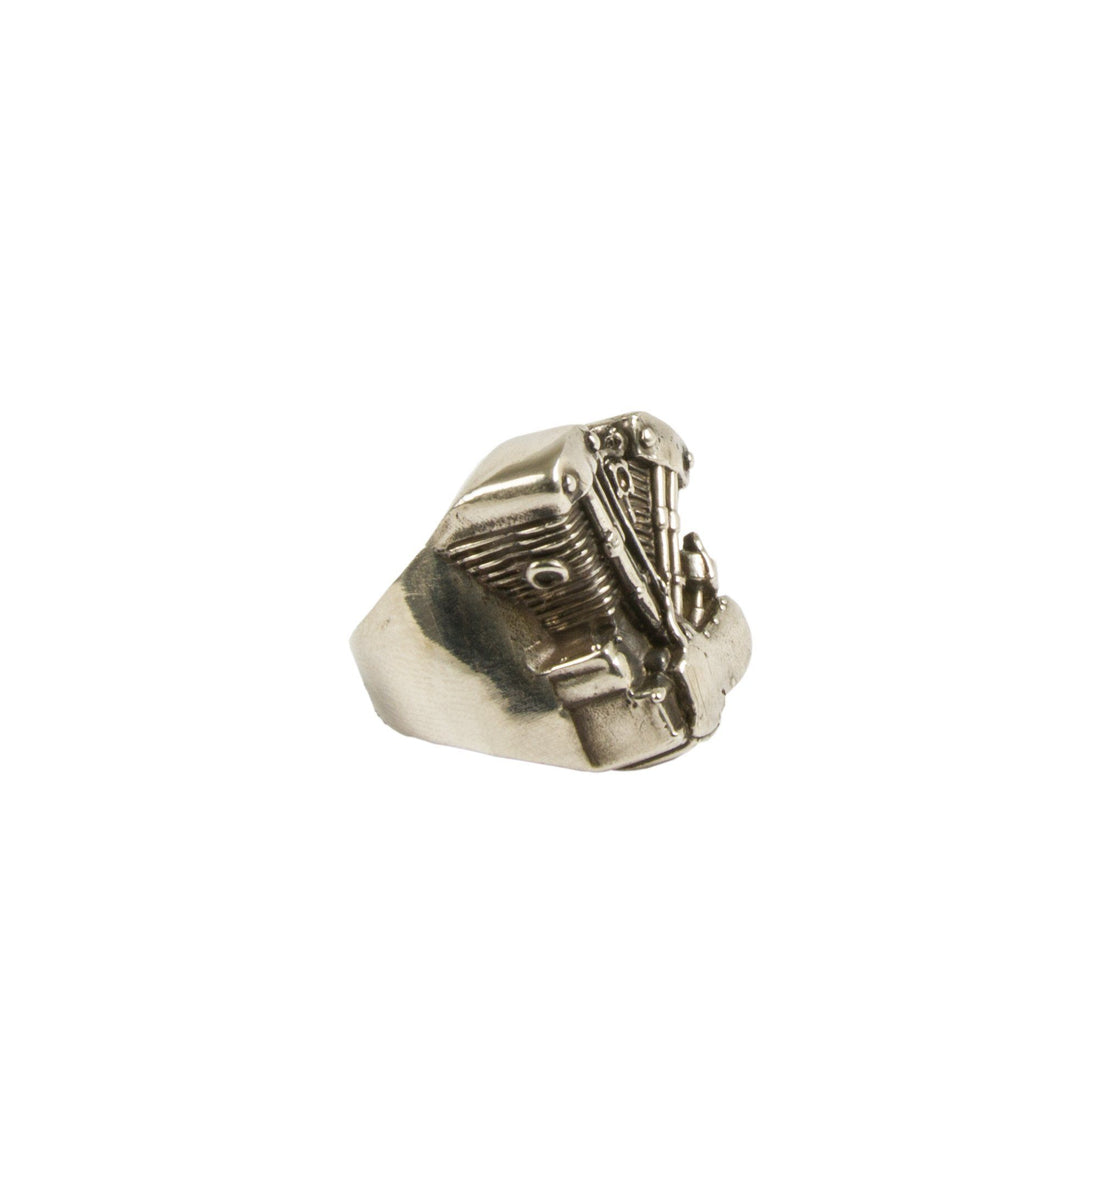 Repop Mfg - Knucklehead Ring - Jewelry - Iron and Resin